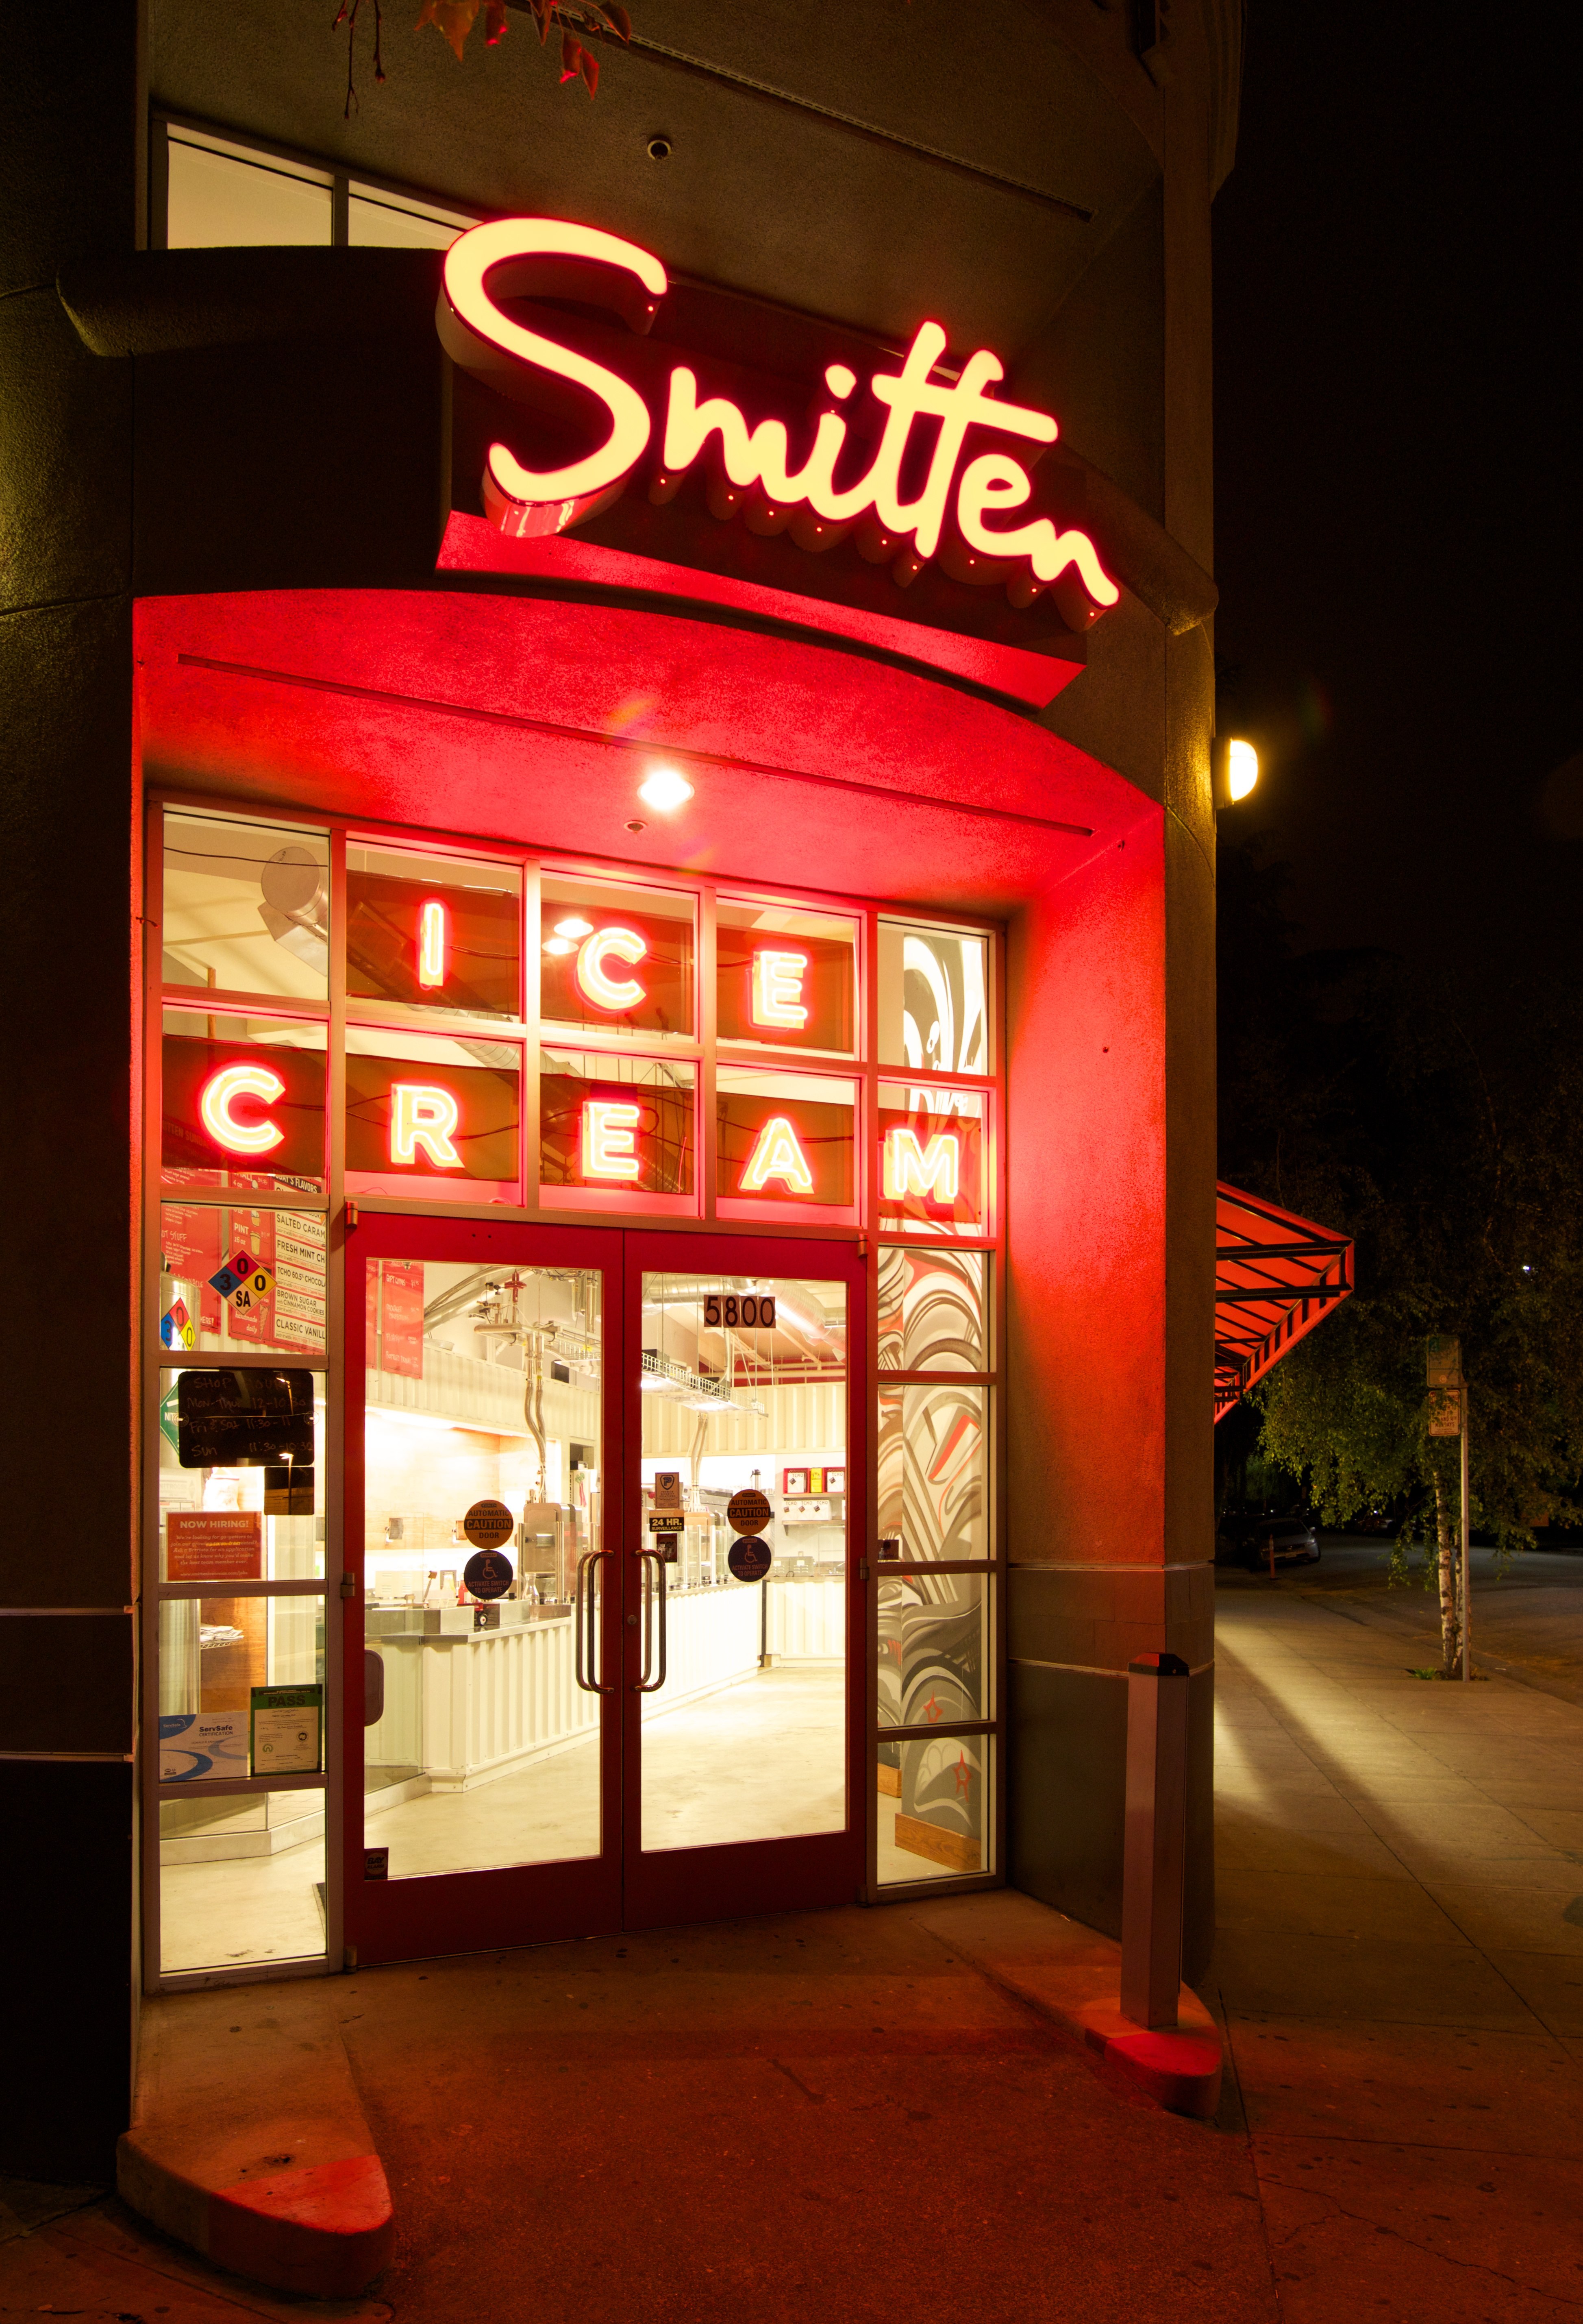 Smitten Ice Cream Rockridge rockridge (oakland) | smitten ice cream